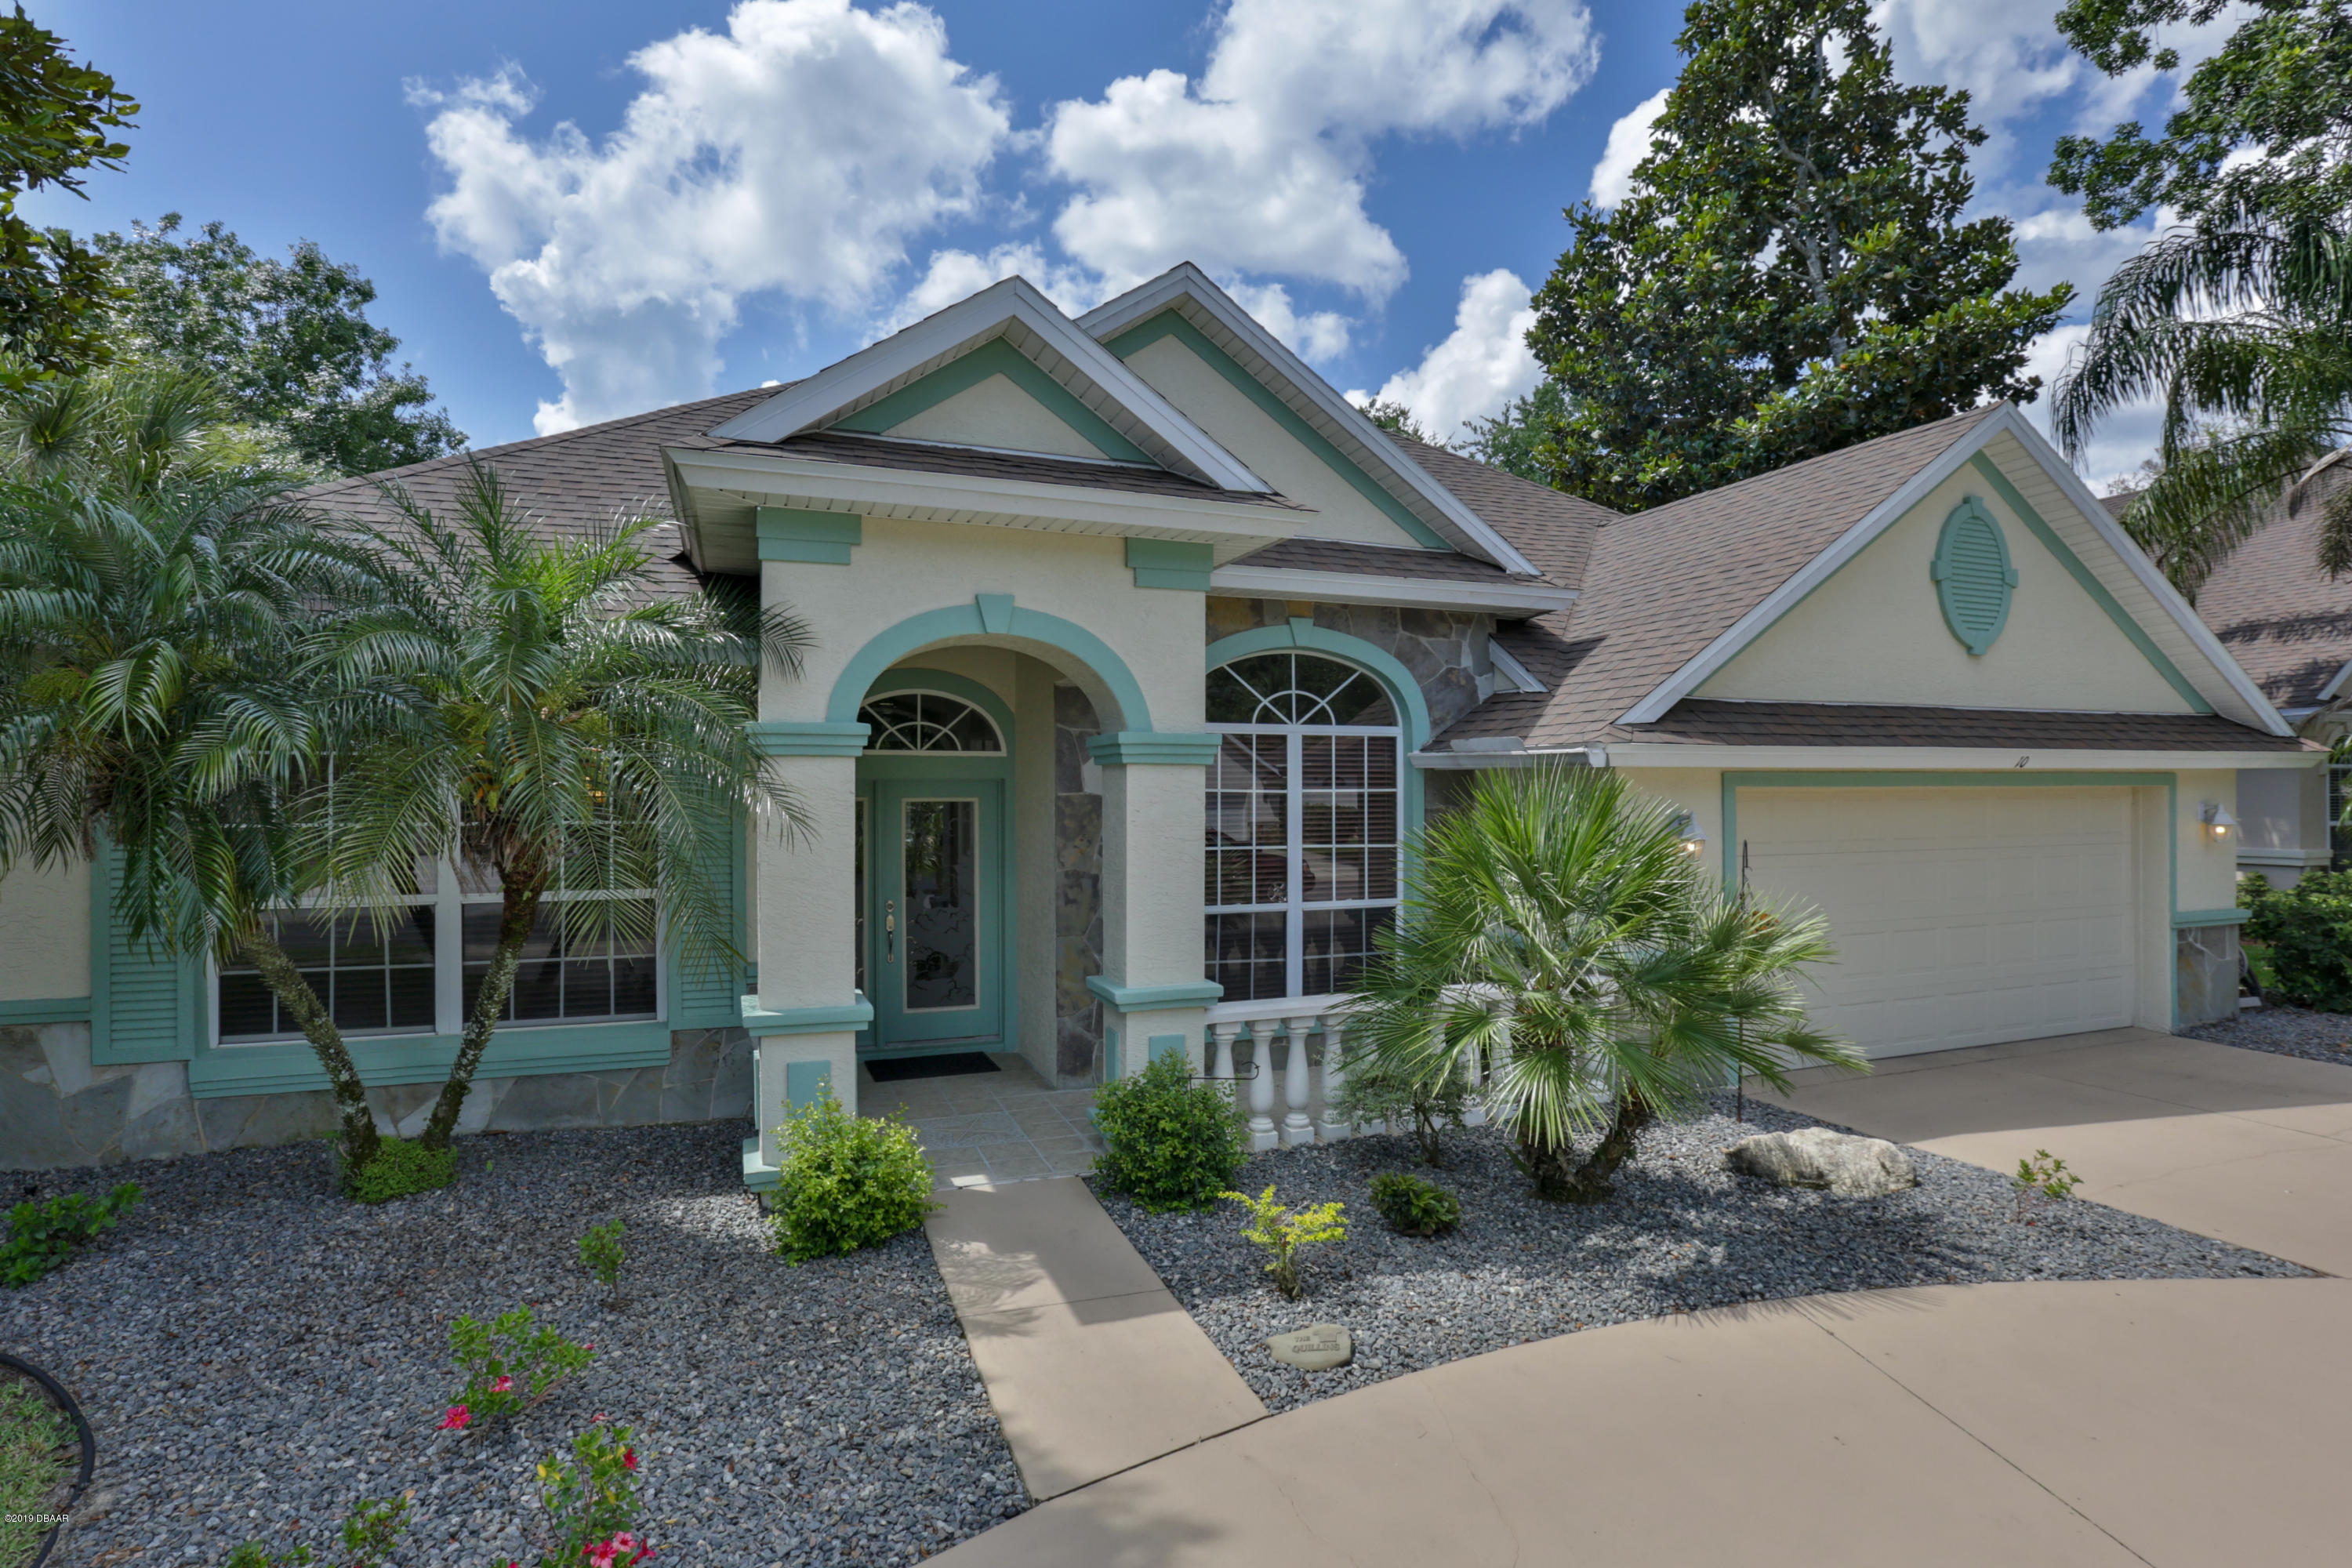 10 Lionshead Drive 32174 - One of Ormond Beach Homes for Sale